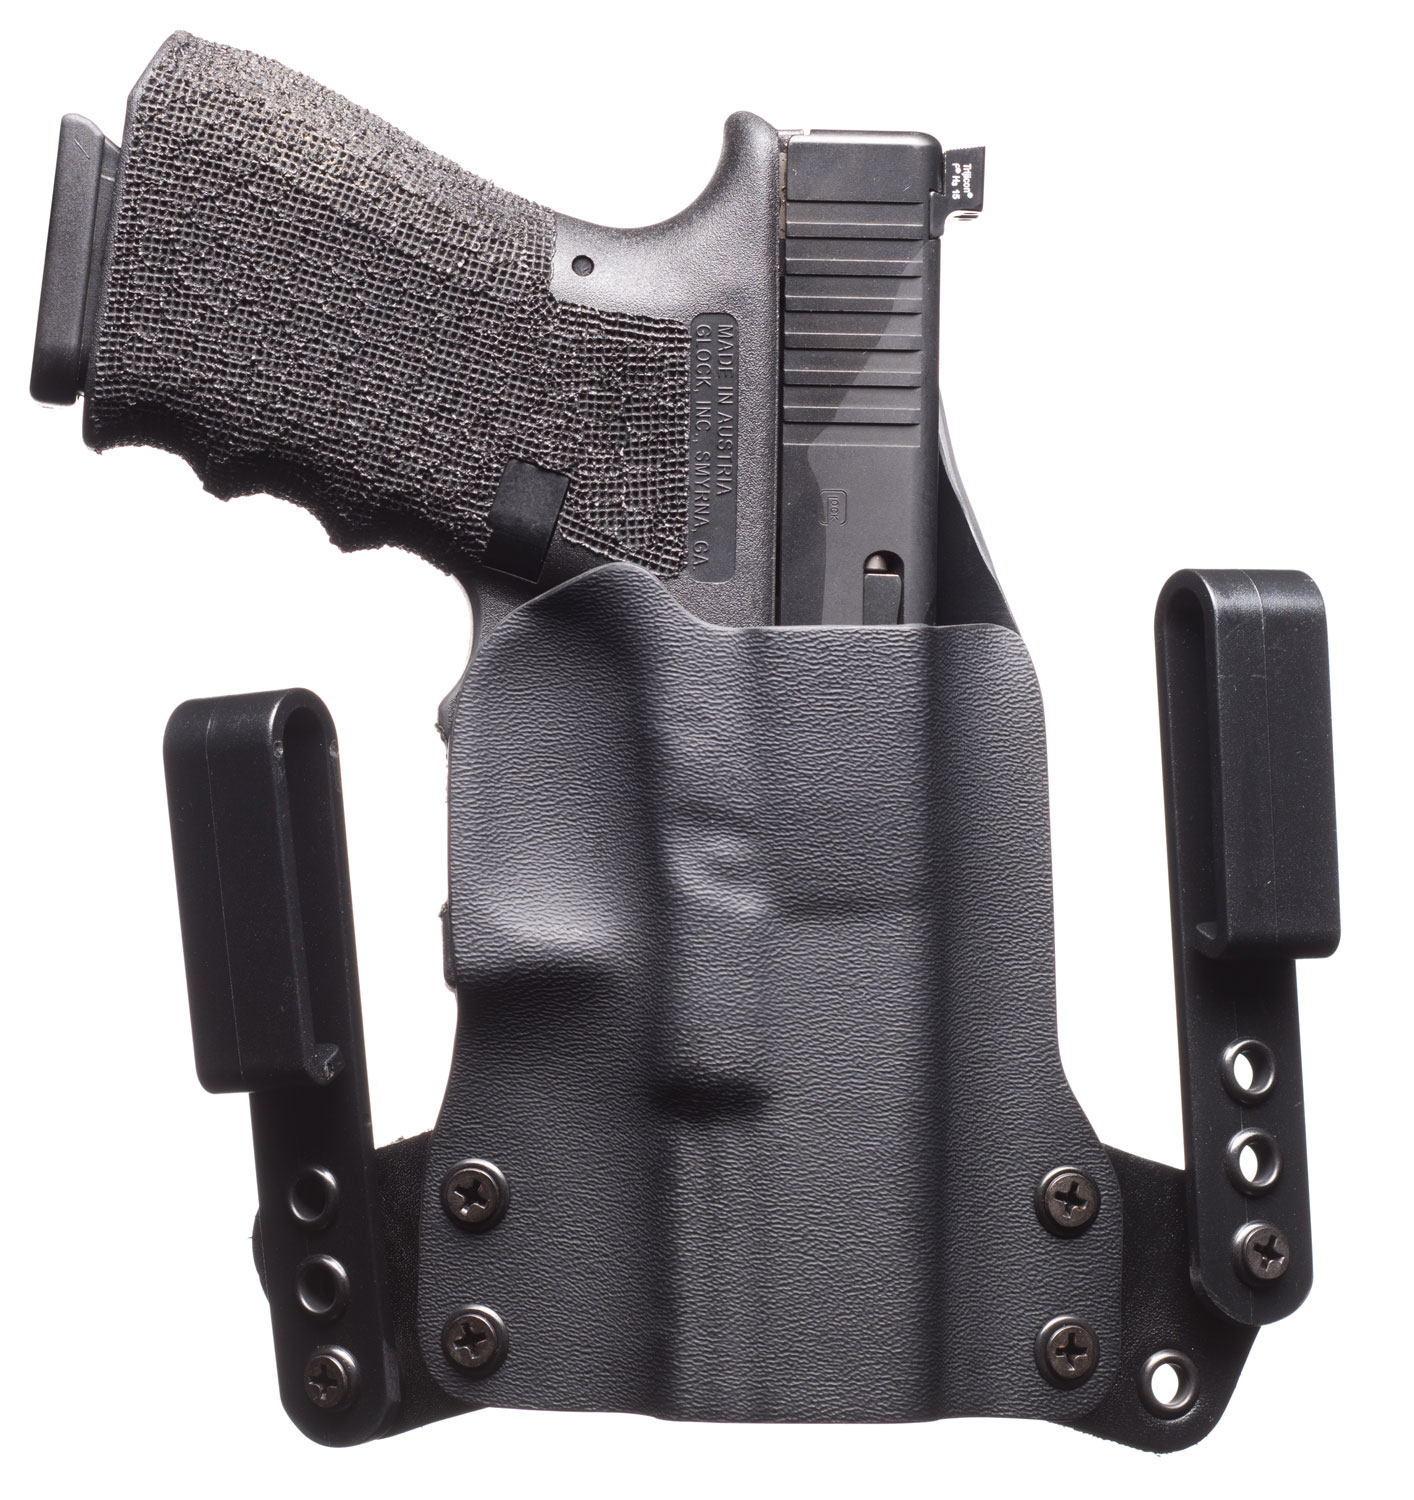 BLK PNT MINI WING S&W SHIELD RH BLK